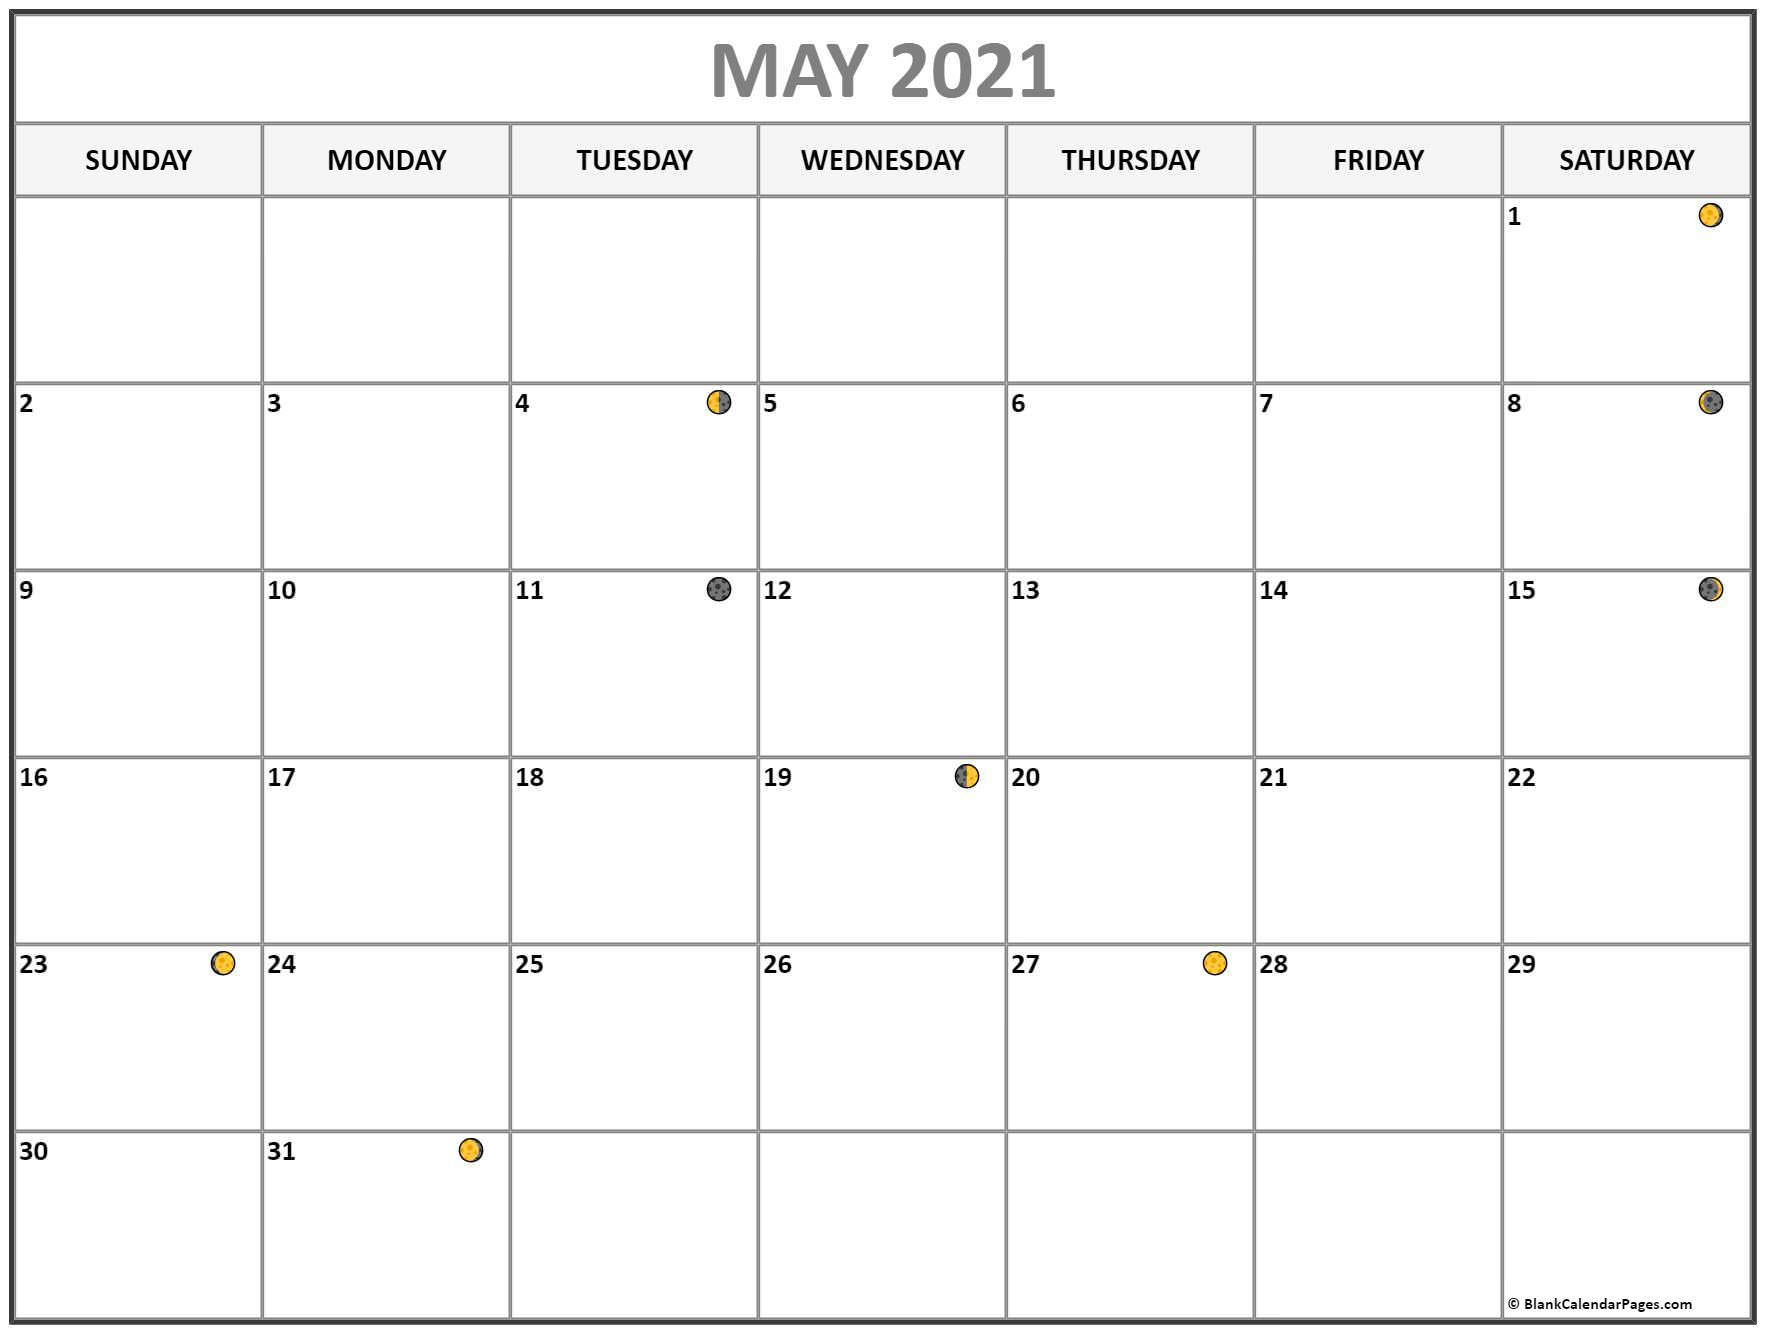 May 2021 Lunar Calendar | Moon Phase Calendar